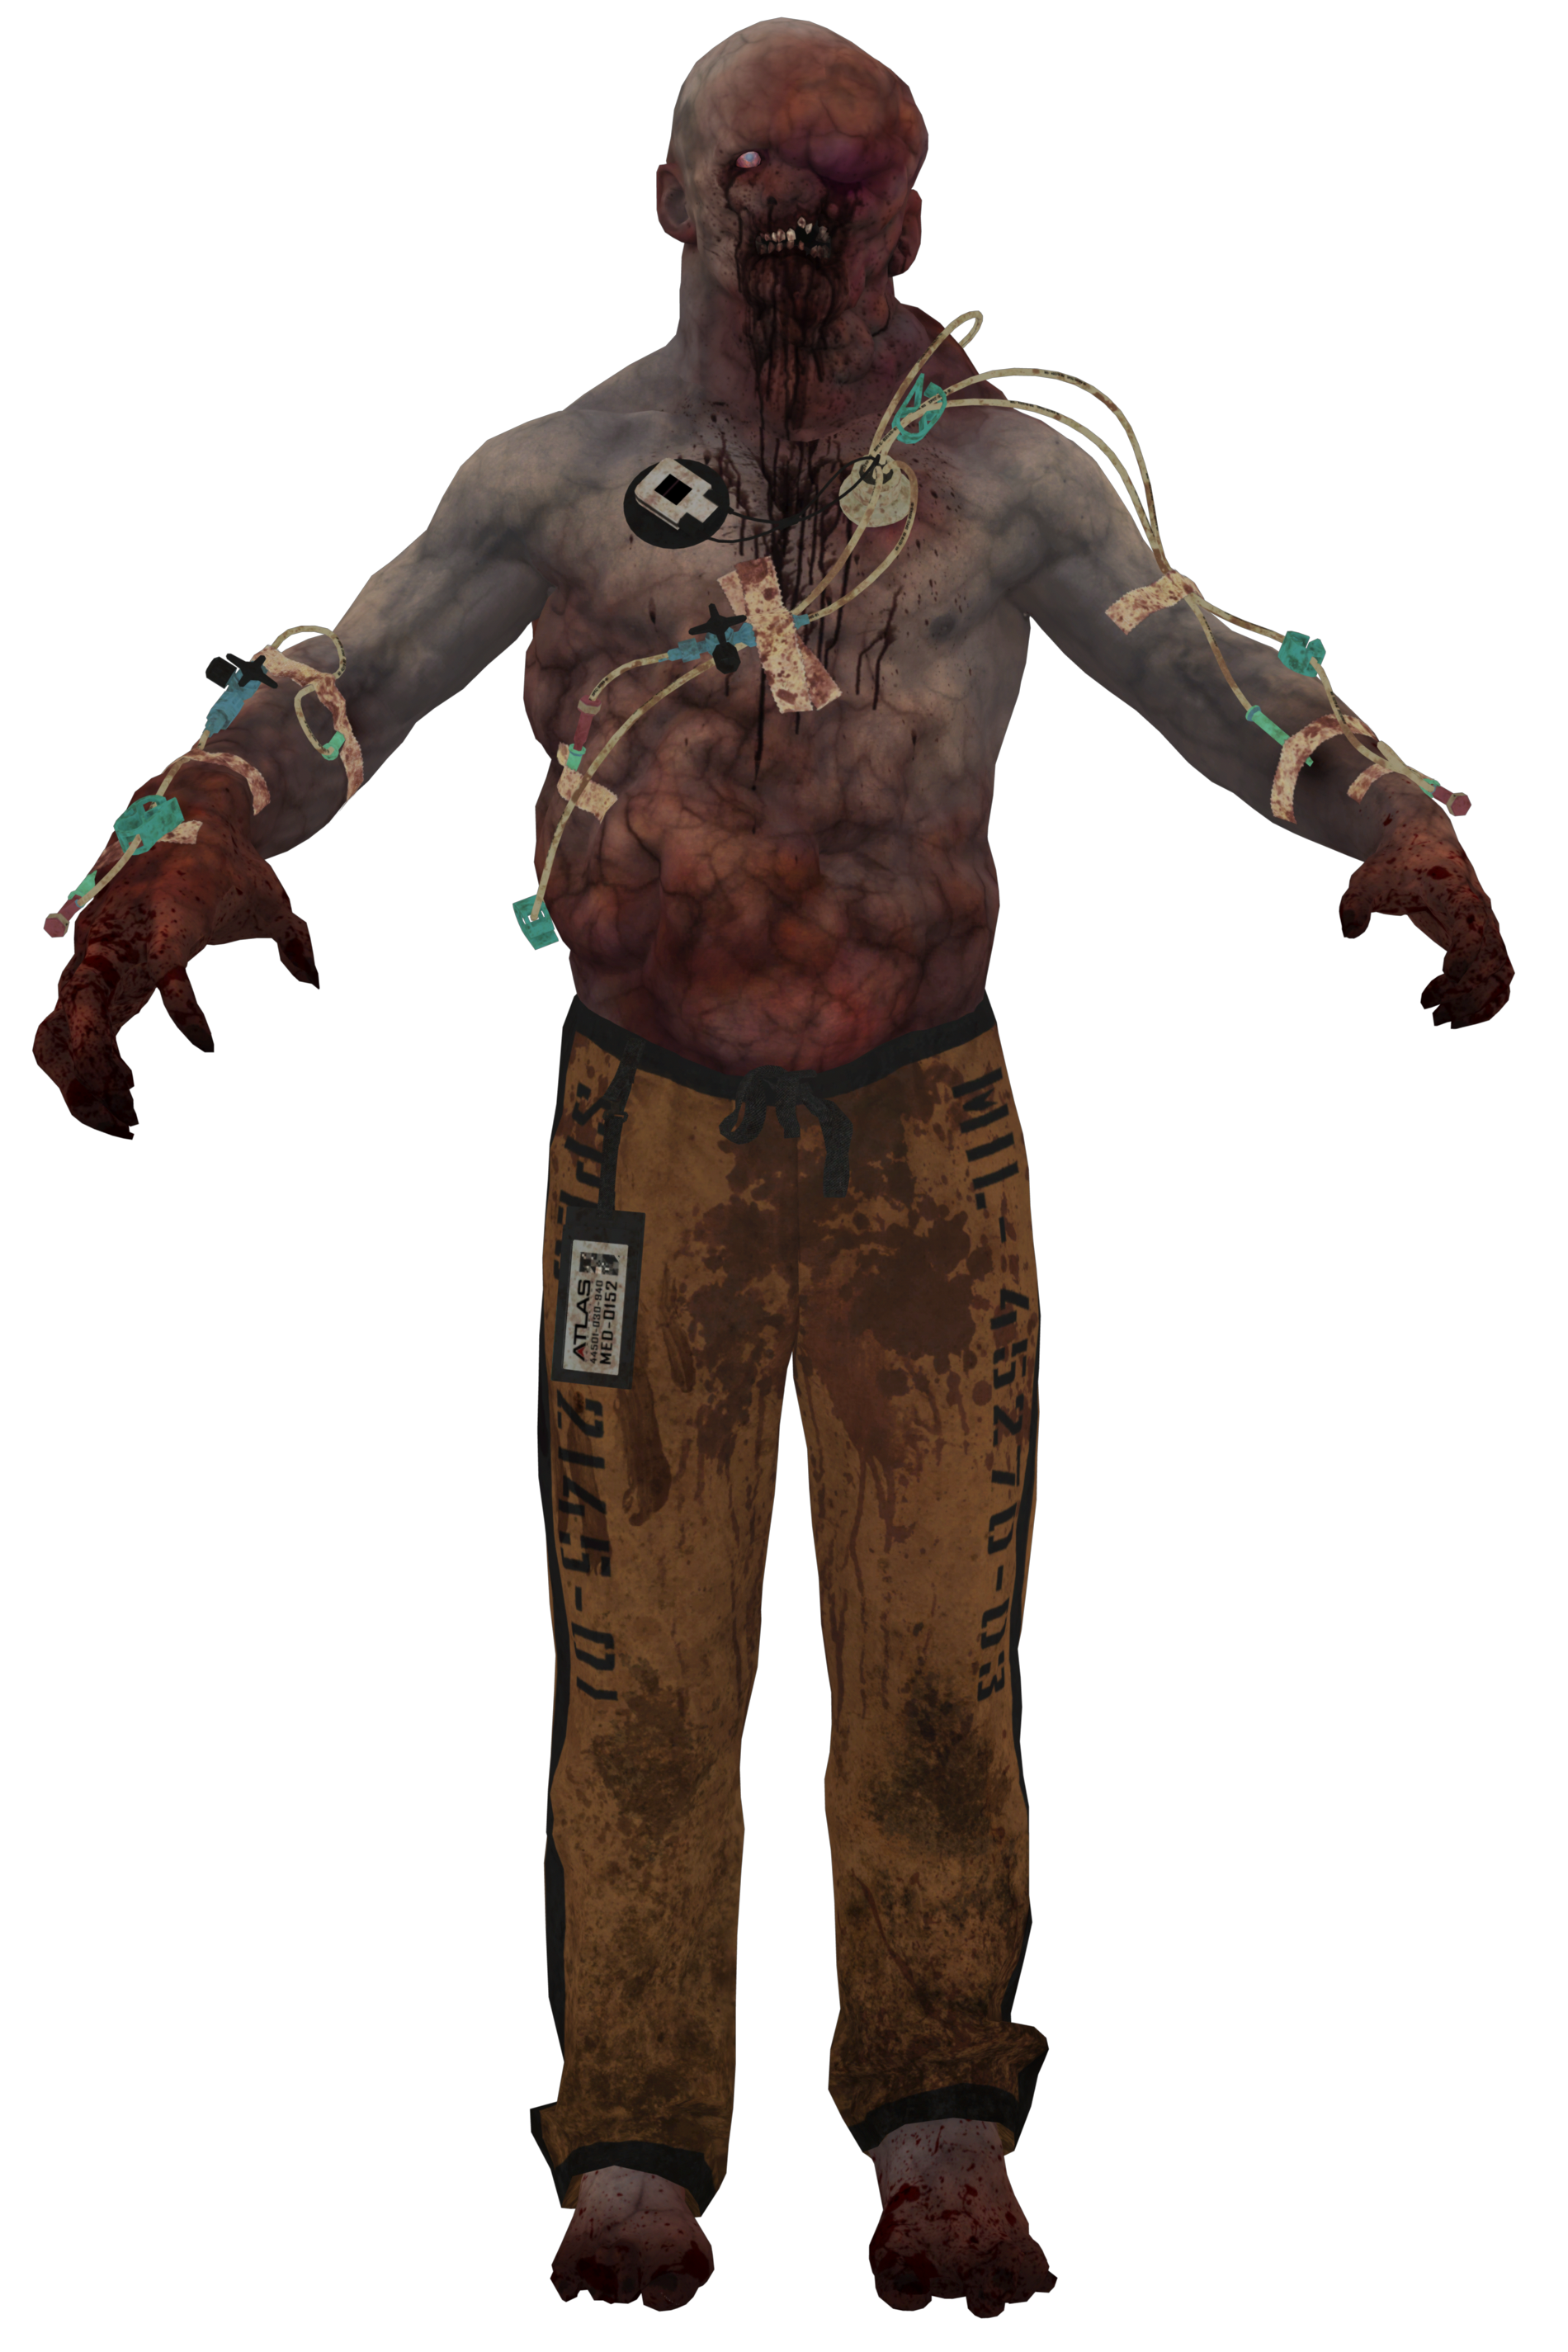 Cod zombie png. Image host model aw